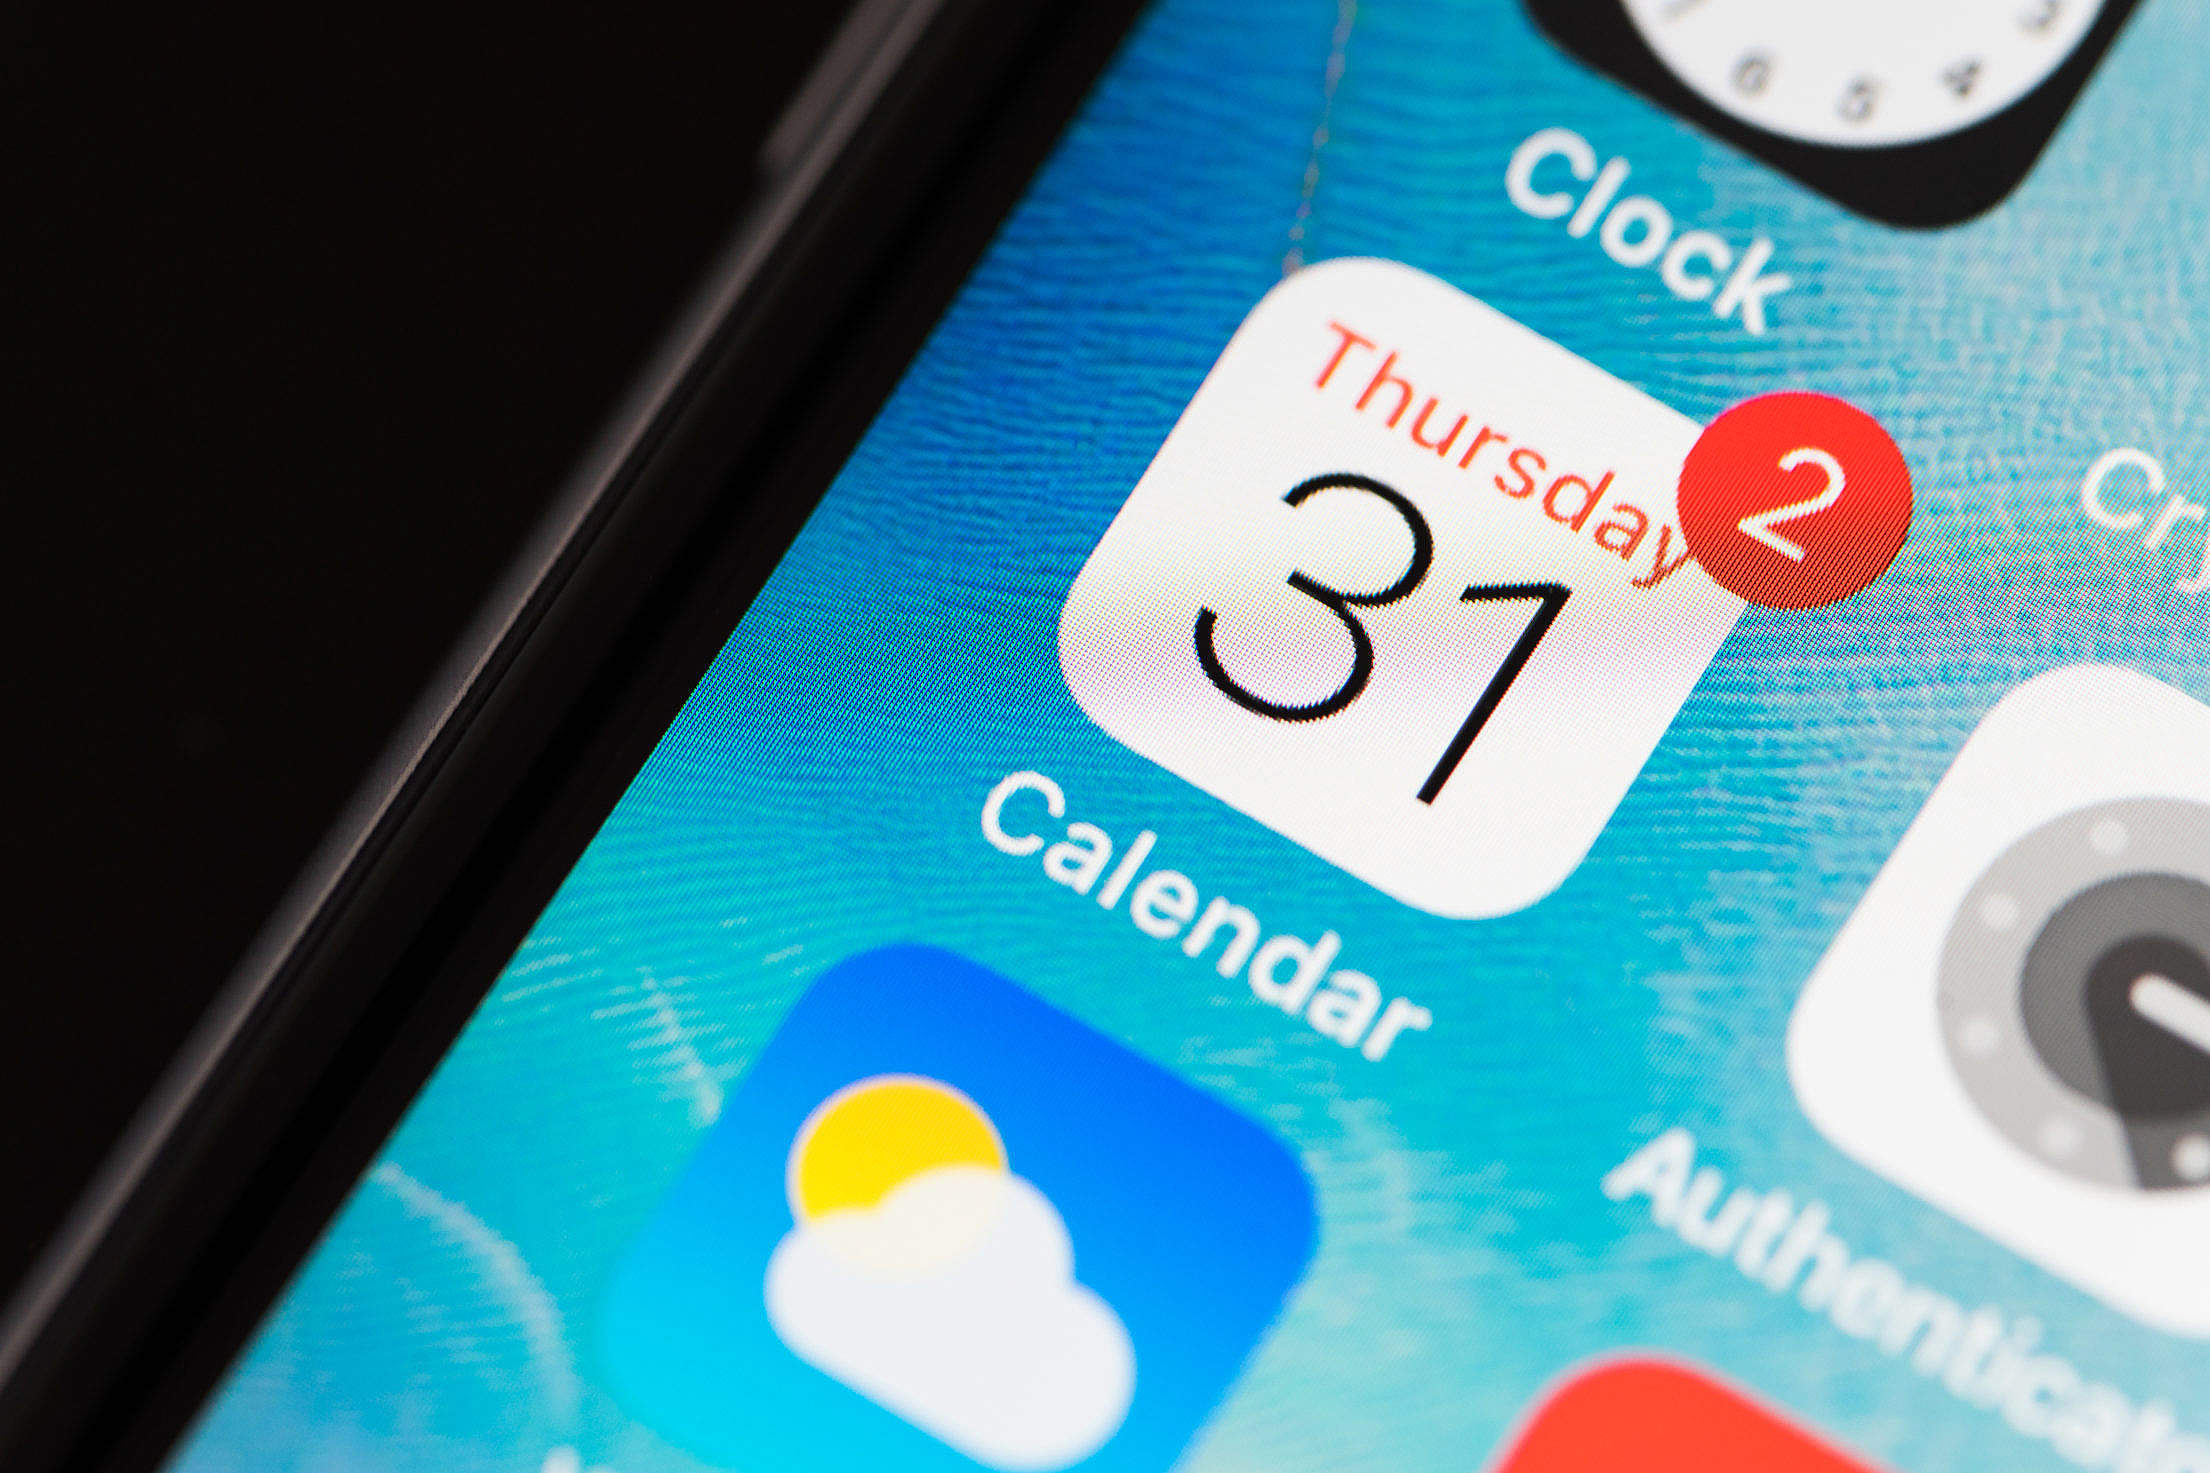 Calendar App Icon for Time Management Free Stock Photo